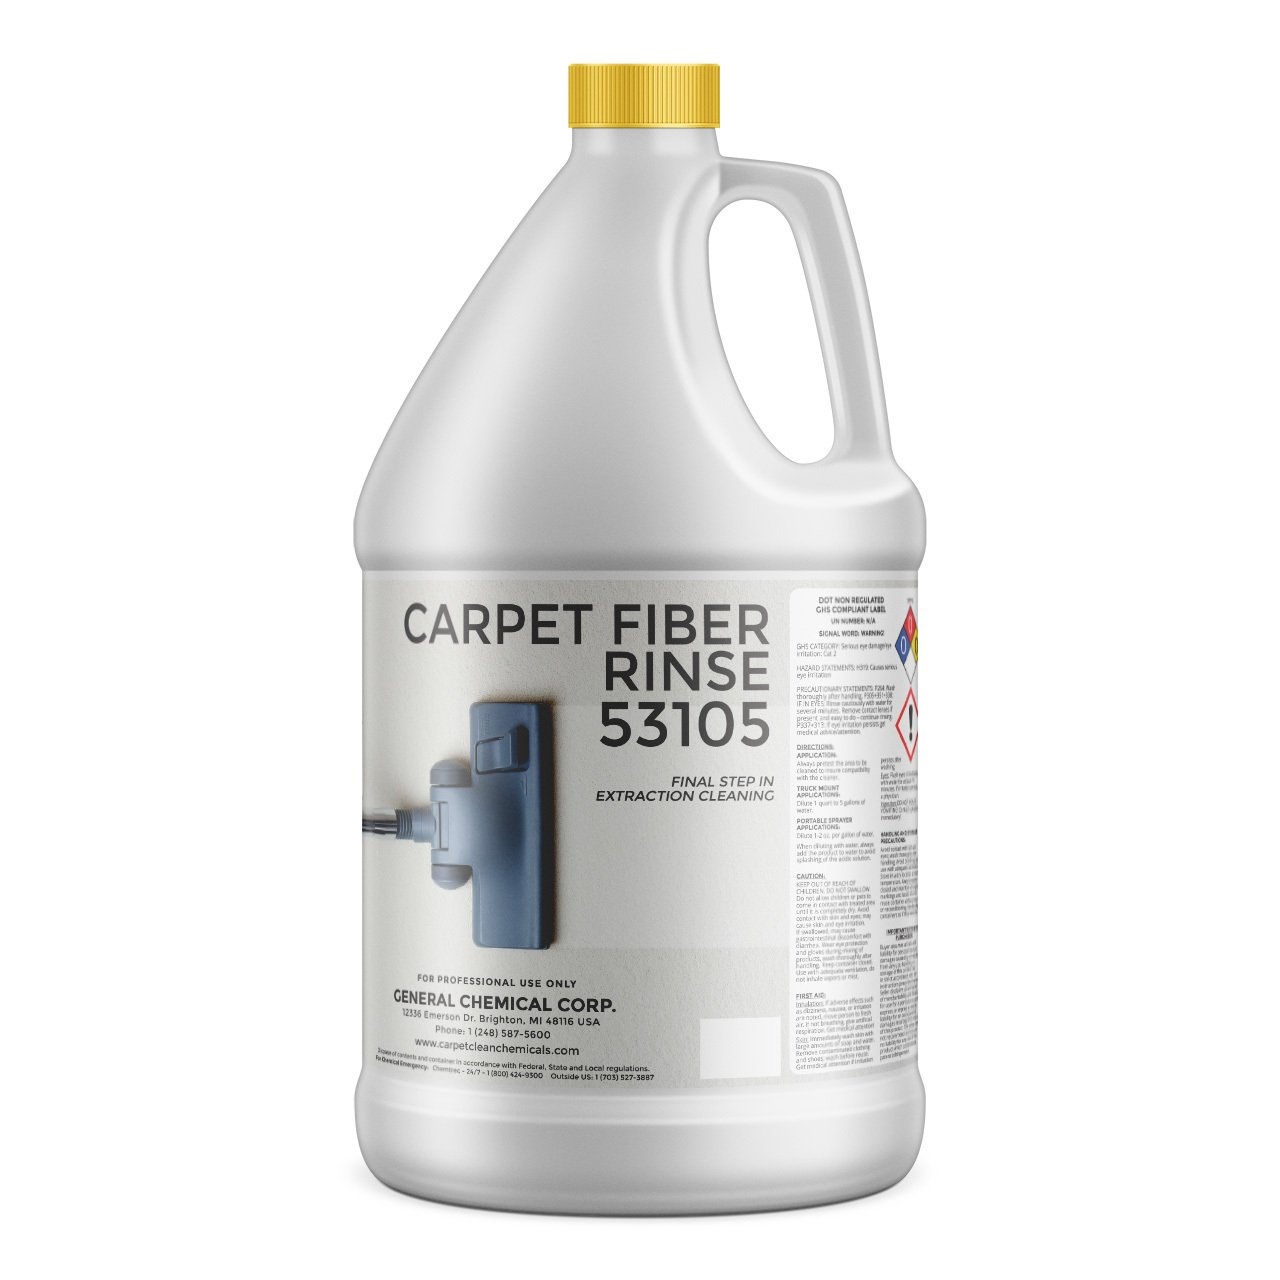 CarpetGeneral Carpet Fiber Rinse Professional Residue Attracting Agent | Prevents Browning, Yellowing & Bleeding of Carpet & Upholstery Dye | Residential & Commercial Use | Final Step | 1 Gallon